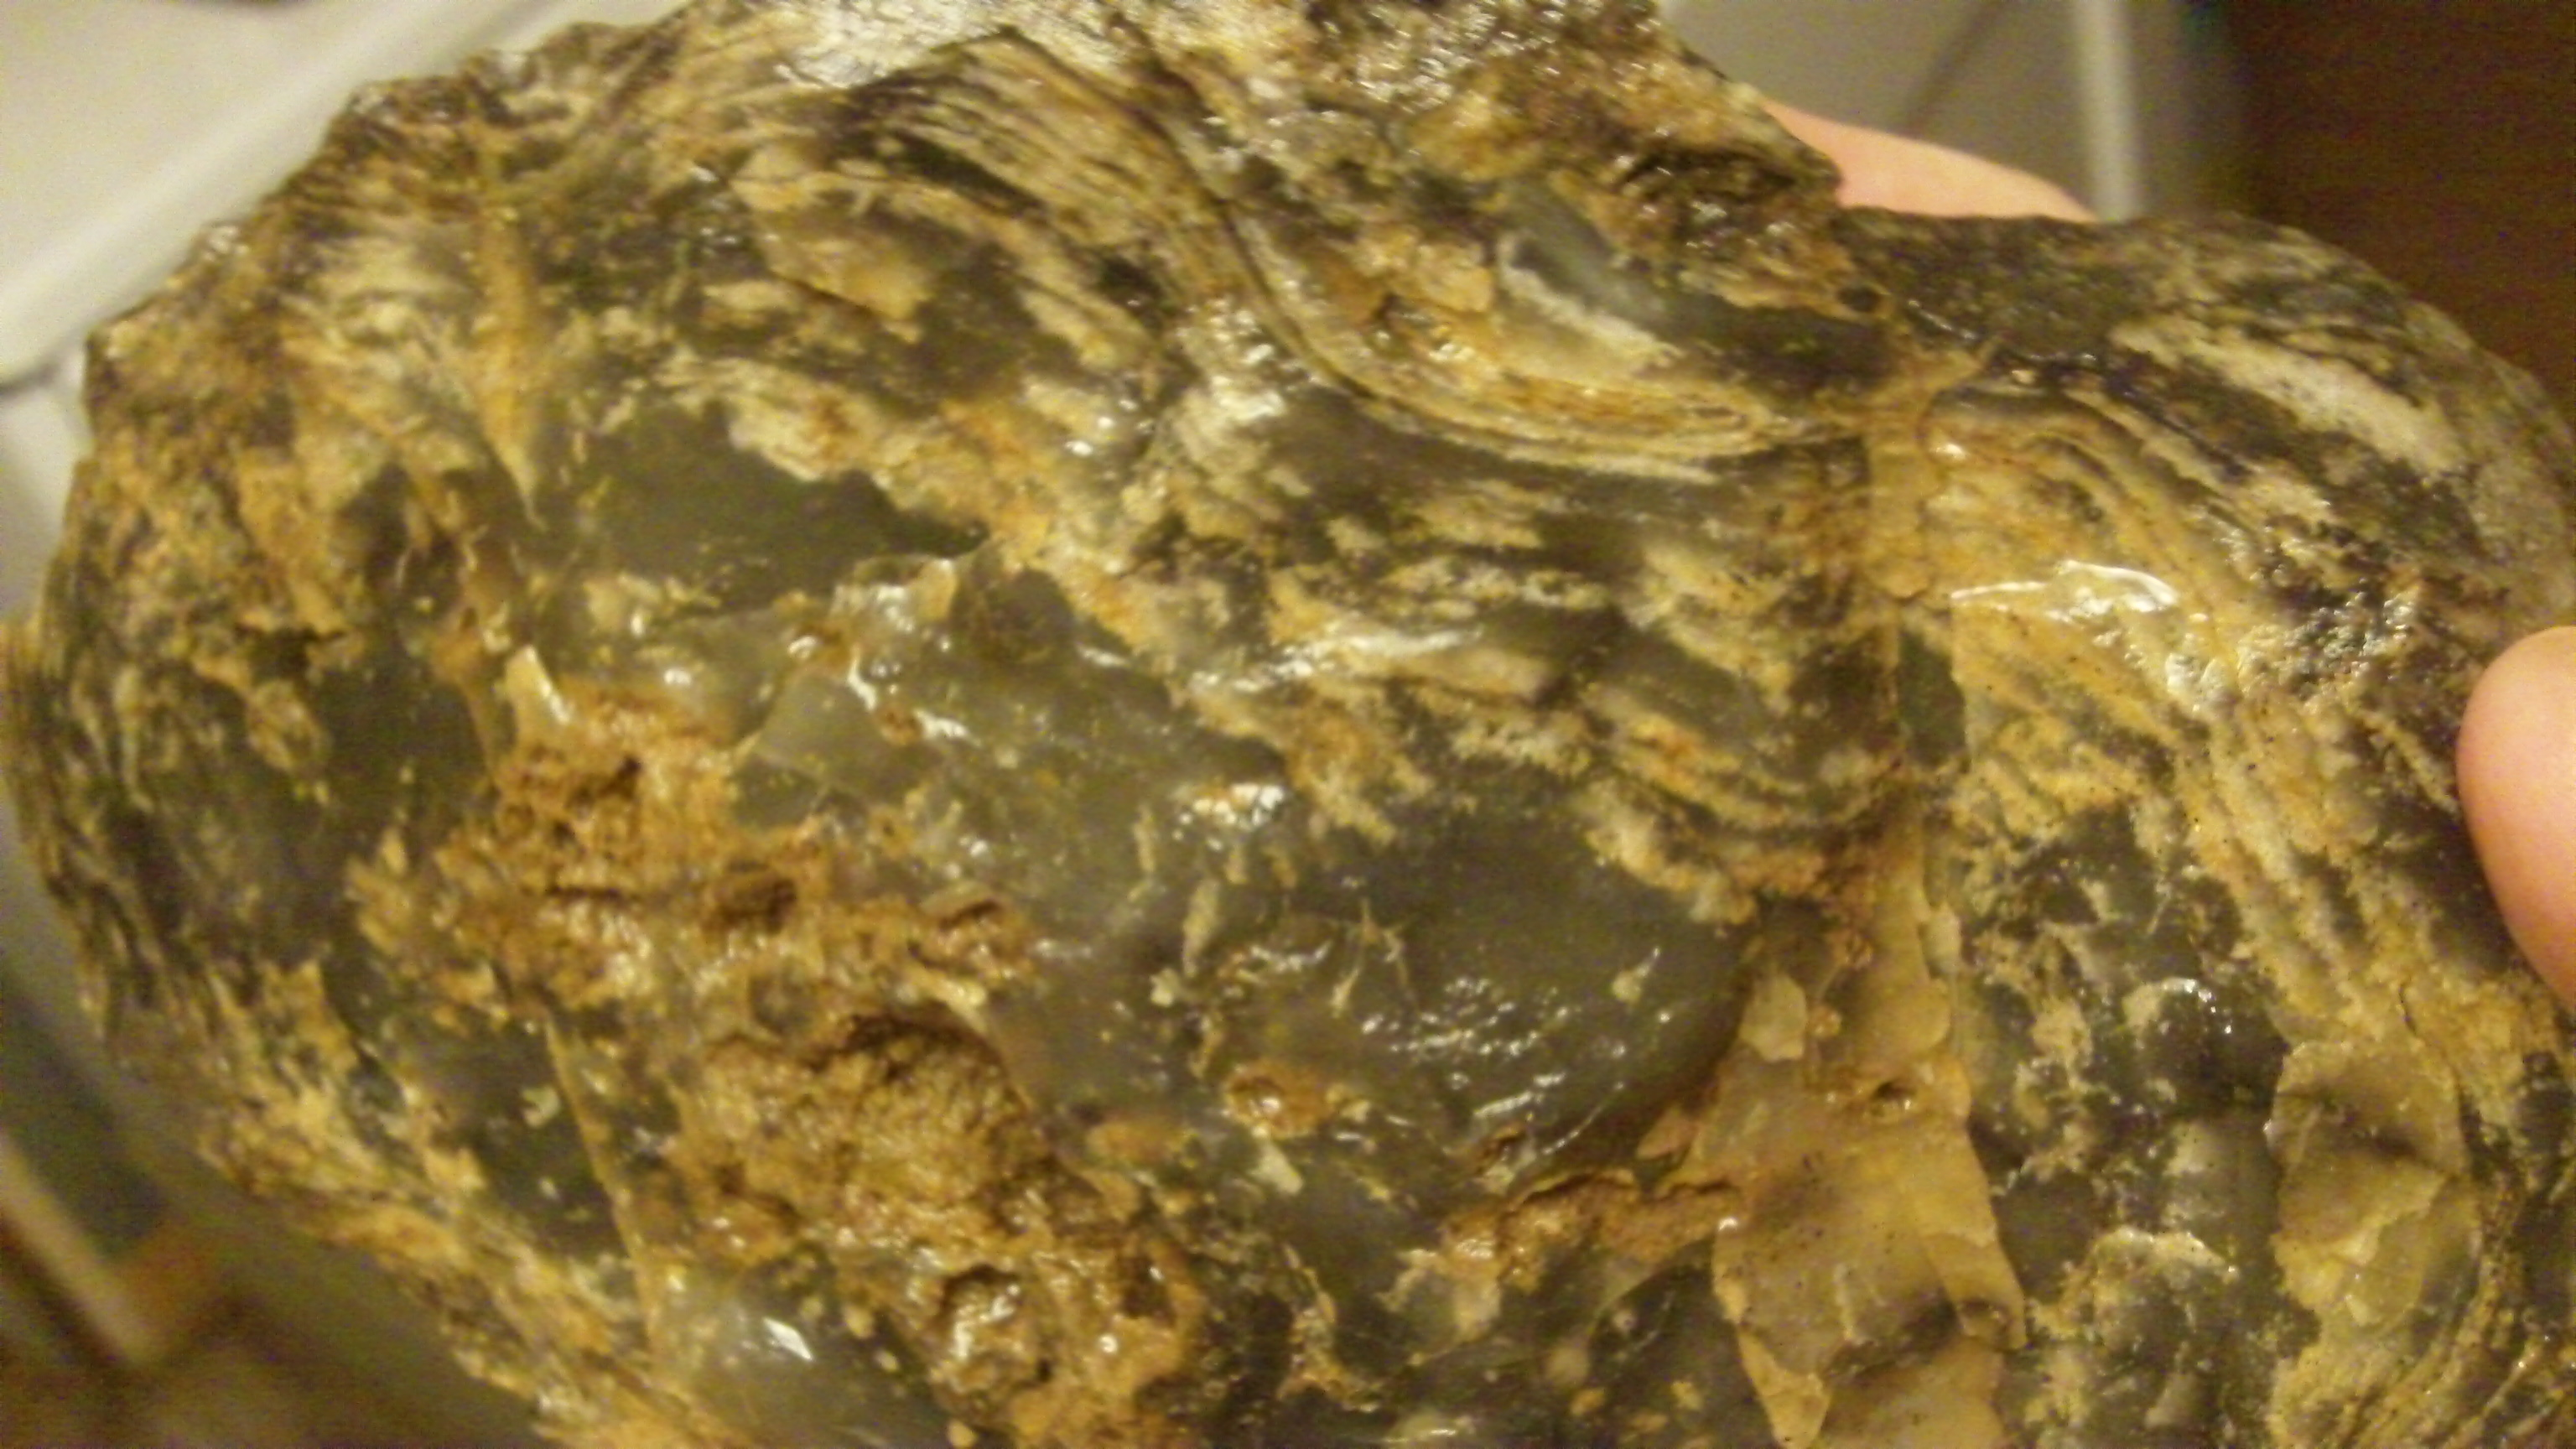 Large Agate Close-Up